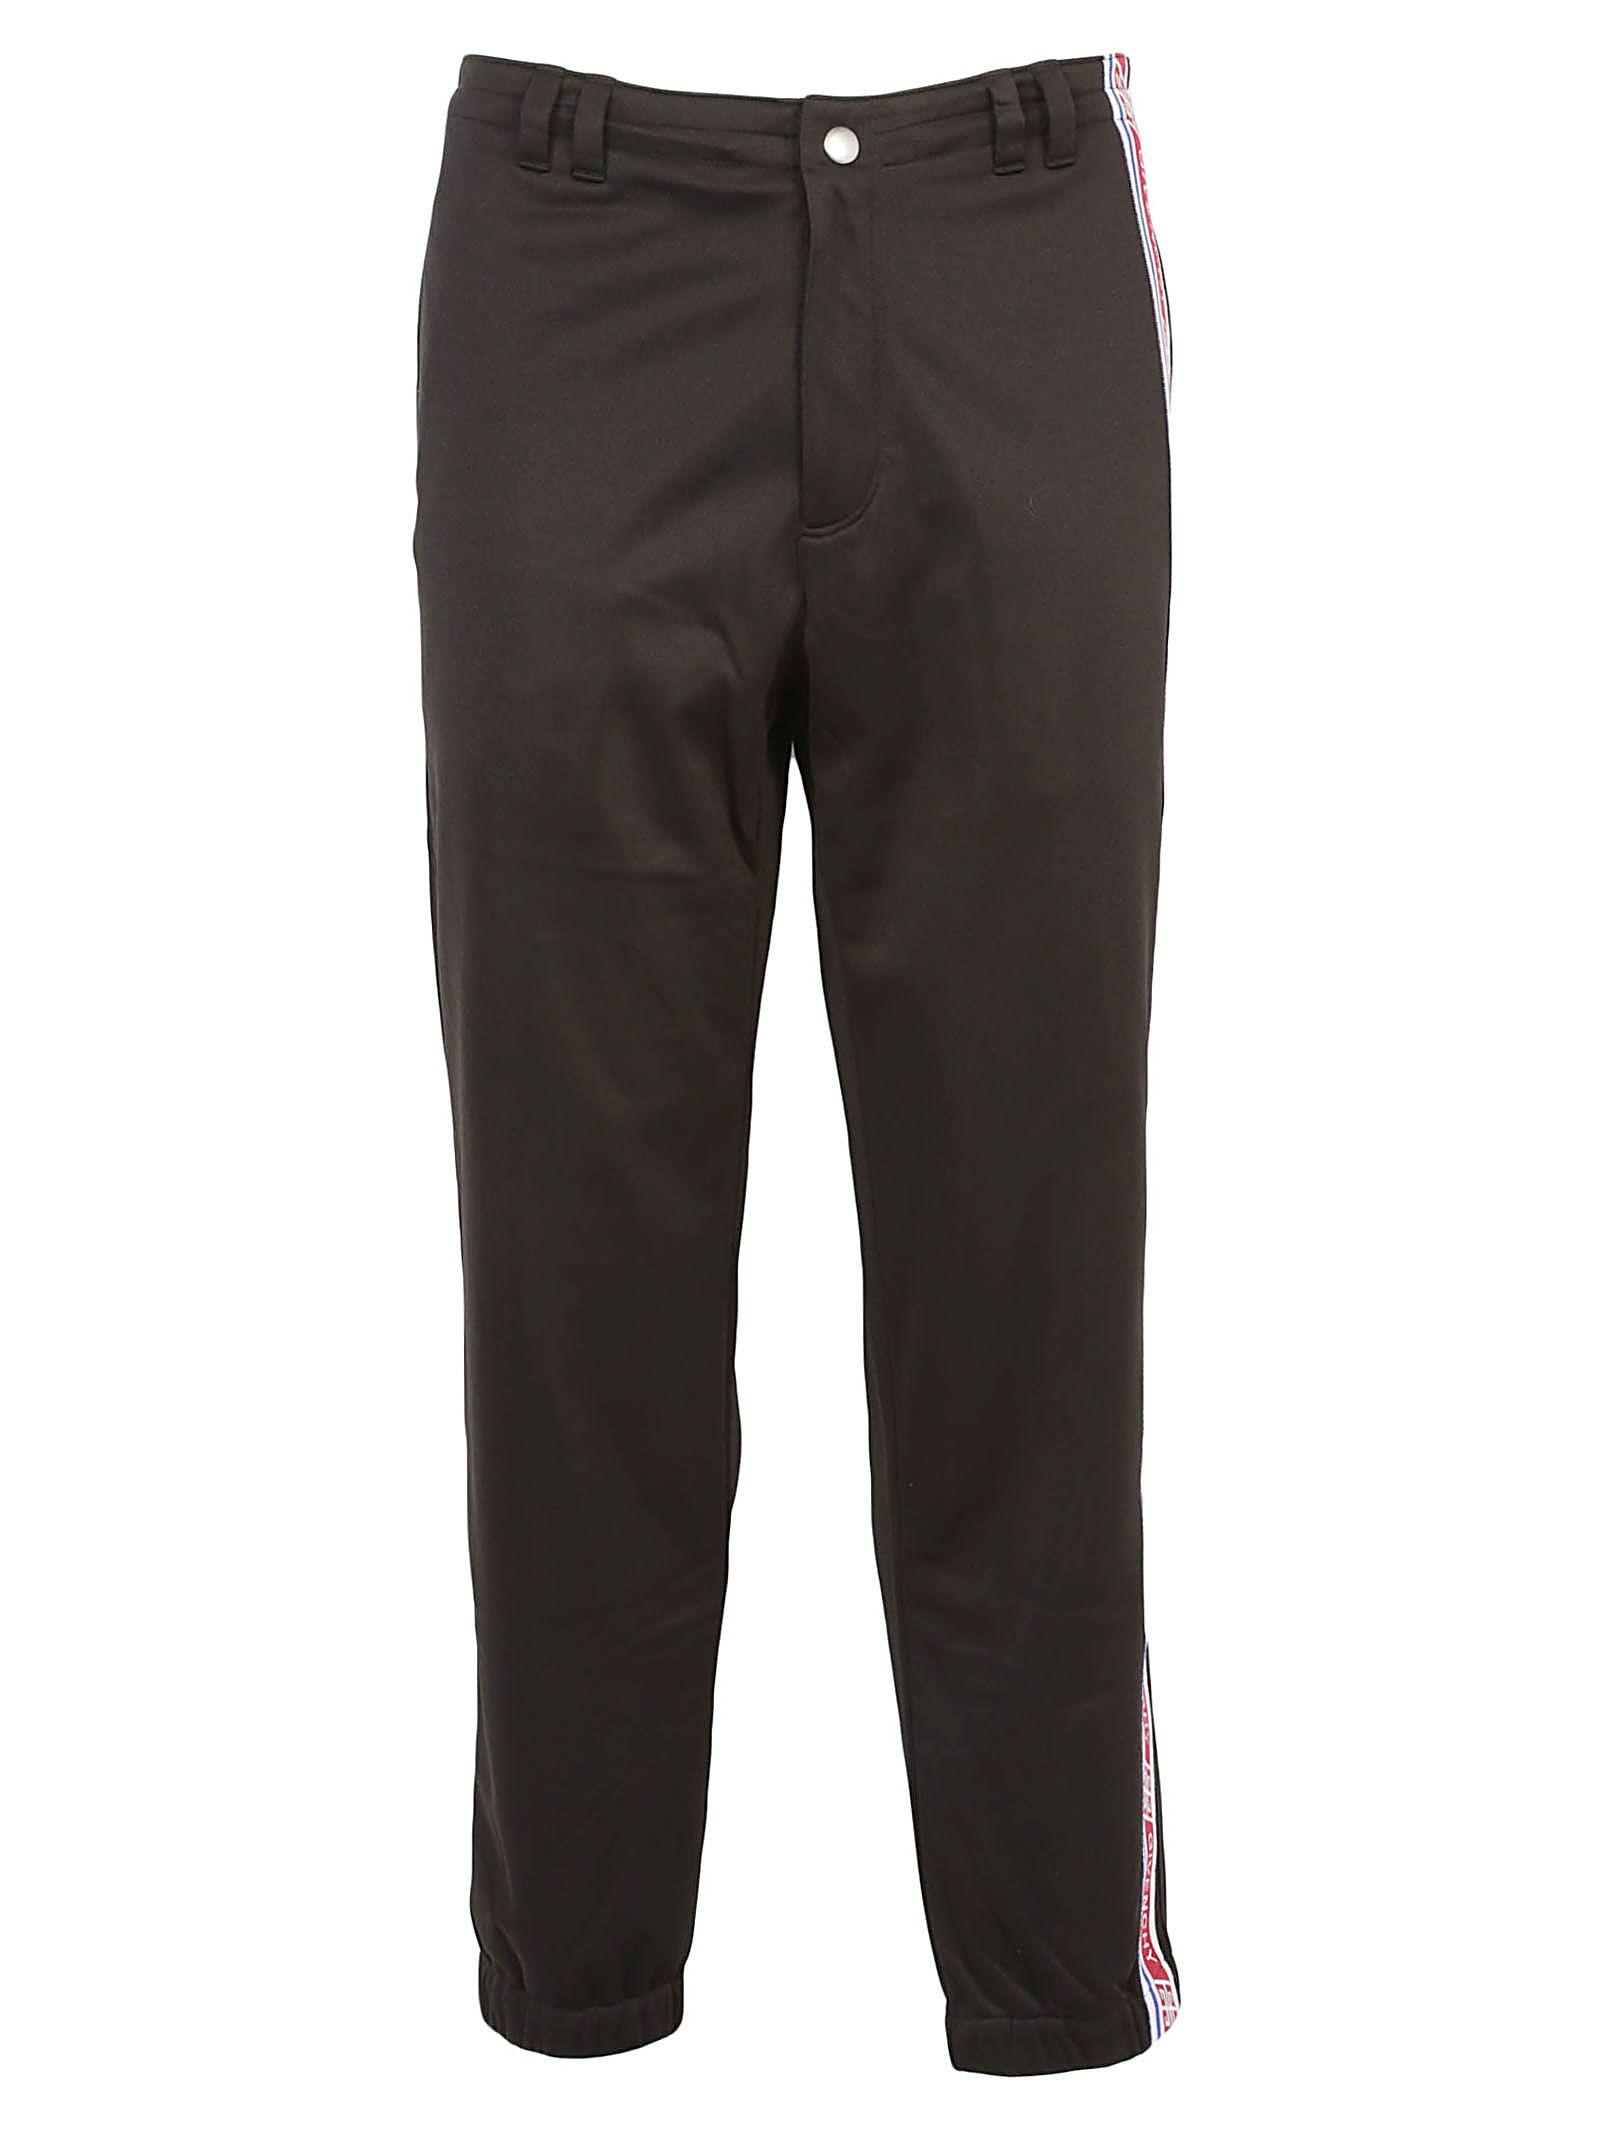 Givenchy Pants In Black